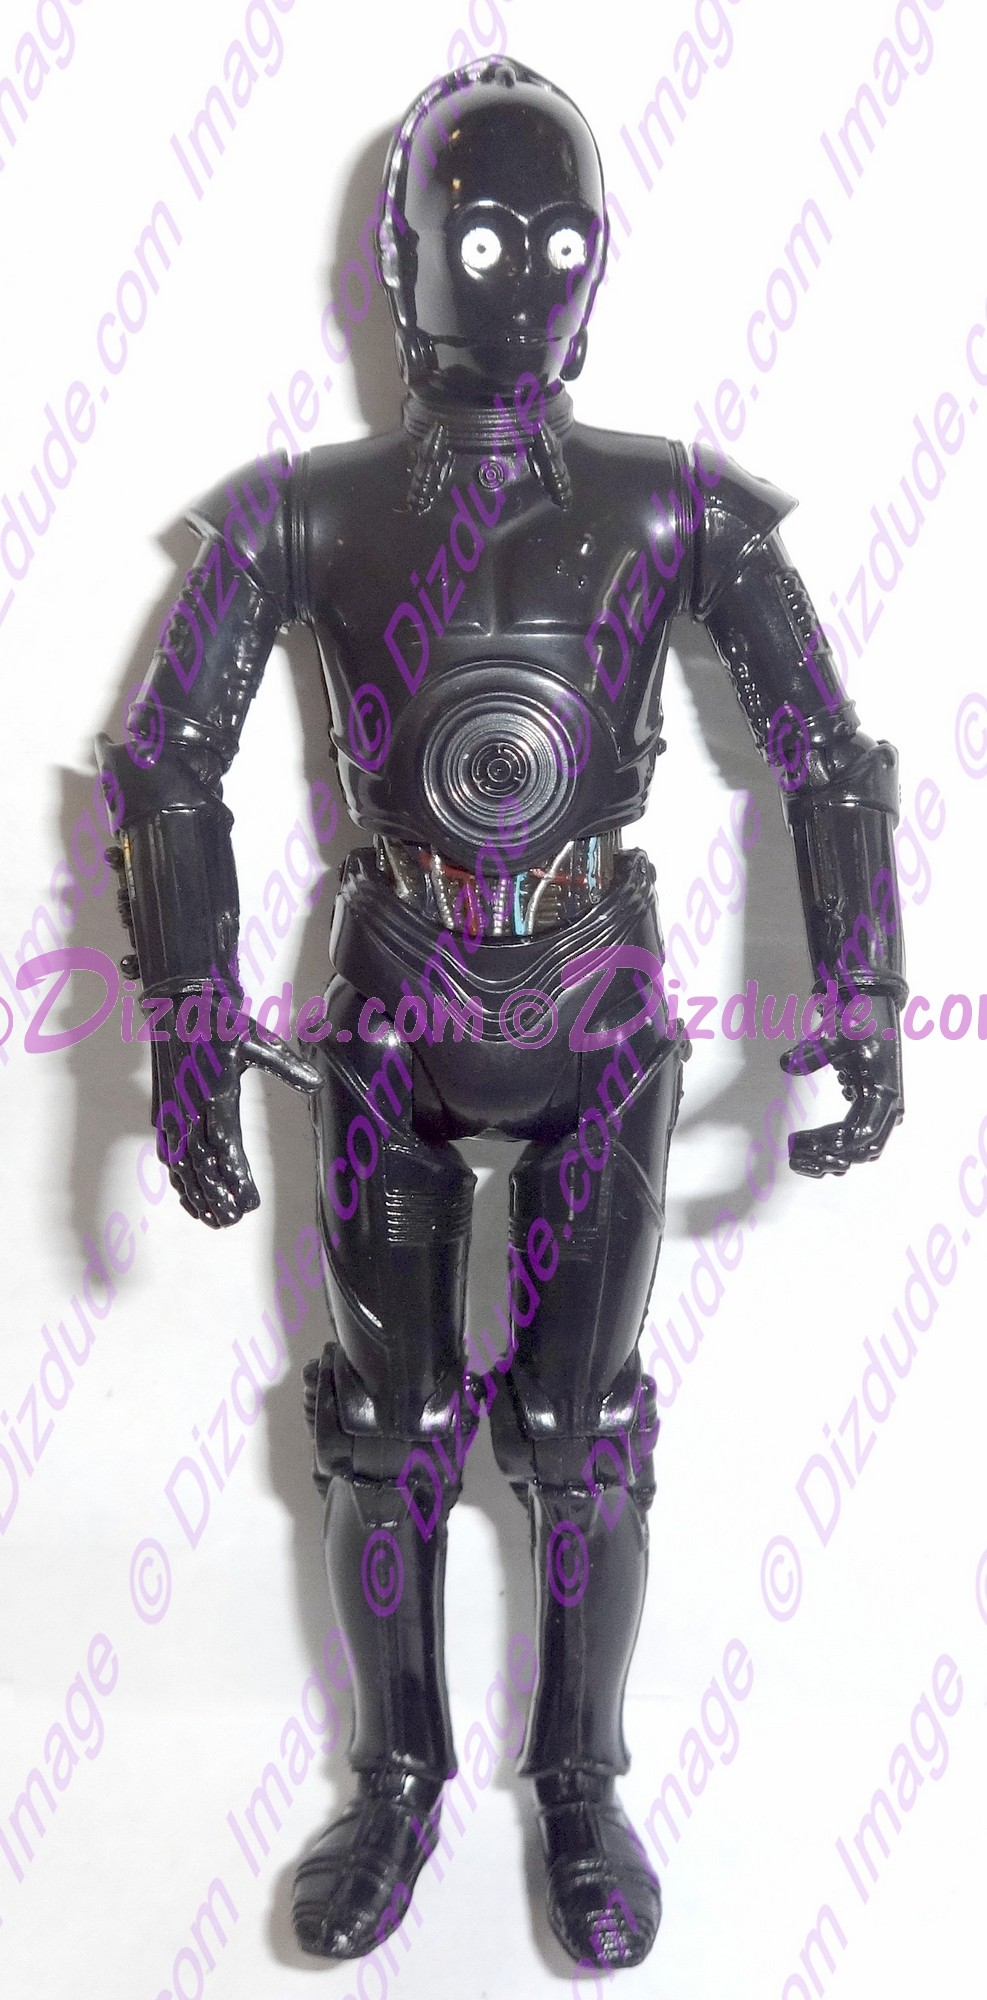 Black 3PO Protocol Droid from Disney Star Wars Build-A-Droid Factory © Dizdude.com